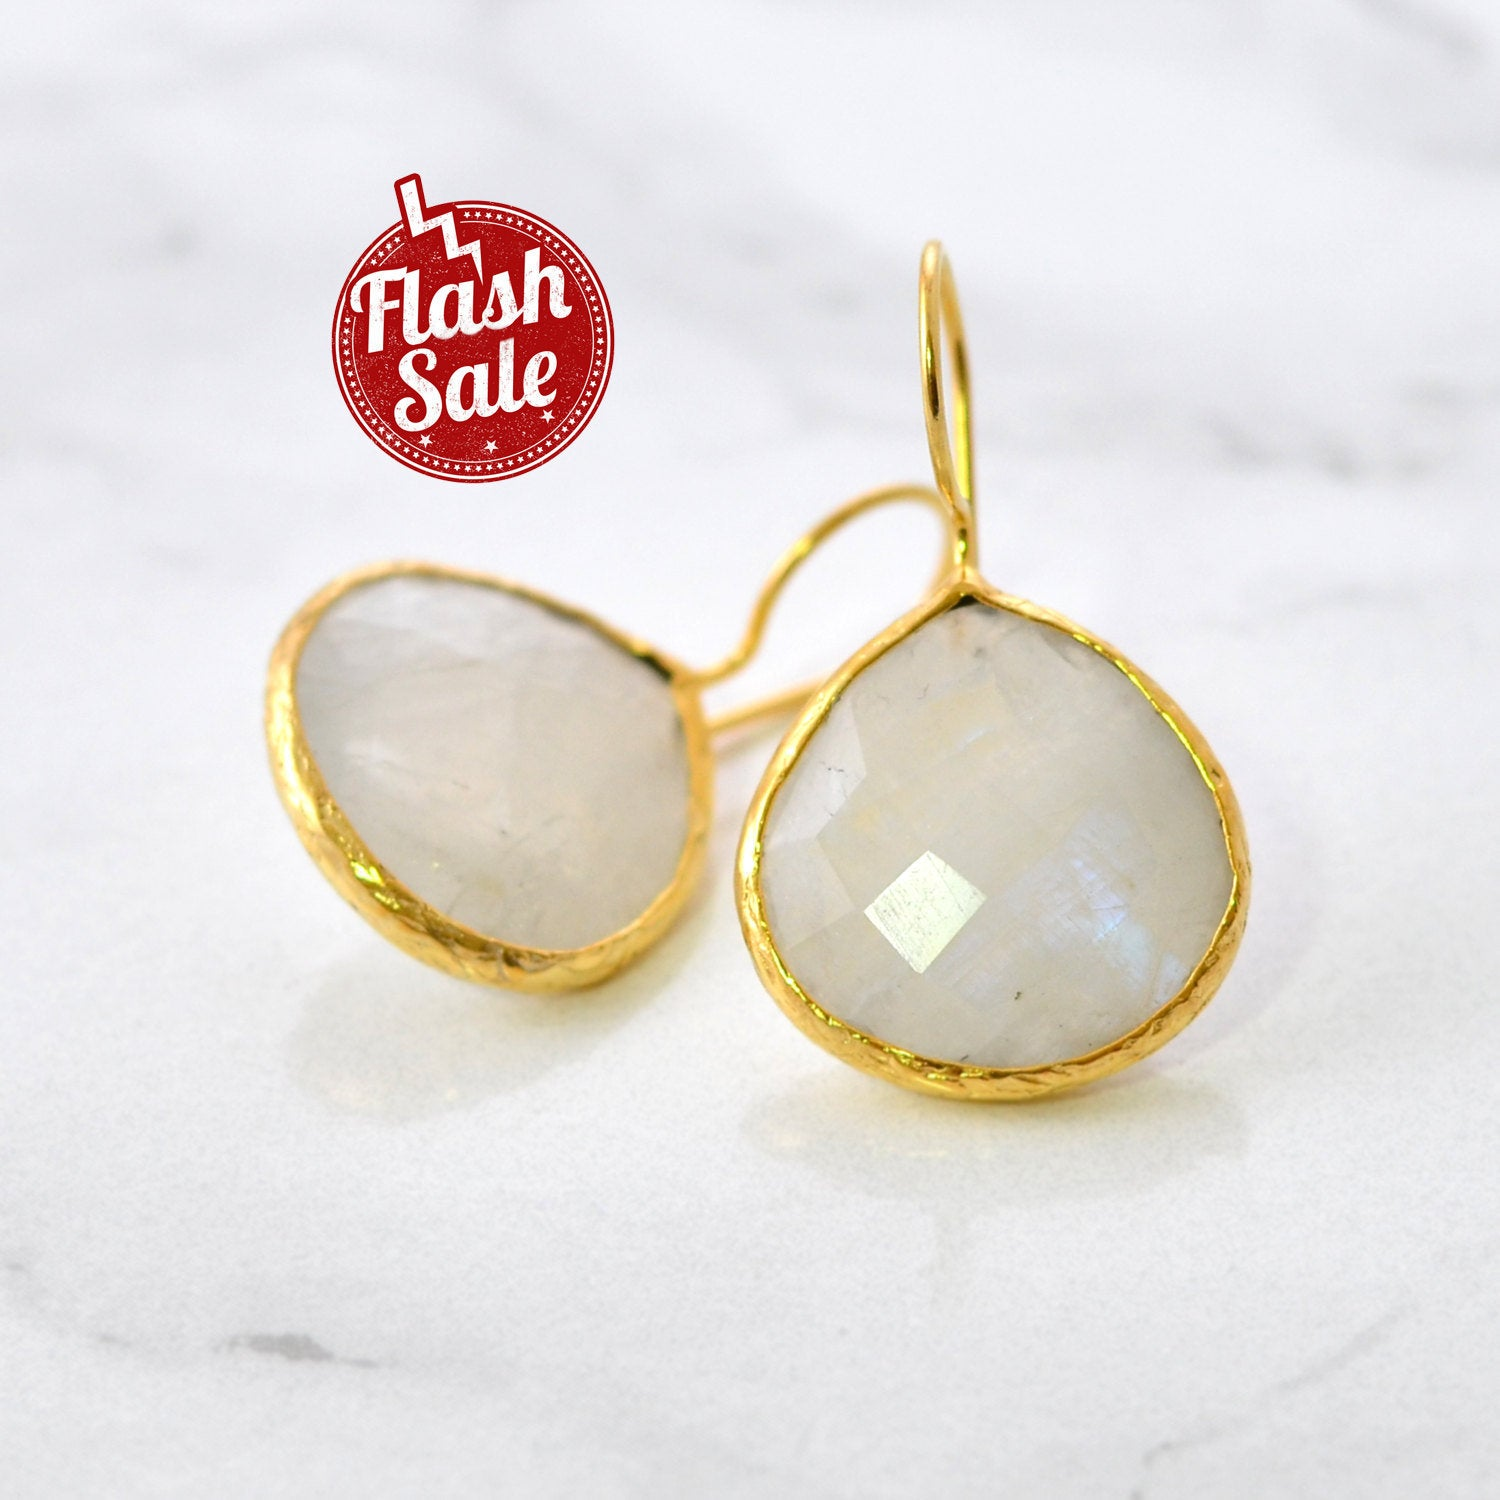 Rainbow Moonstone Earring, Bridesmaid Gift, White Gemstone Earring, Pear Shape Earring, Bridal Earring, Gold Vermeil Earring, Silver Earring